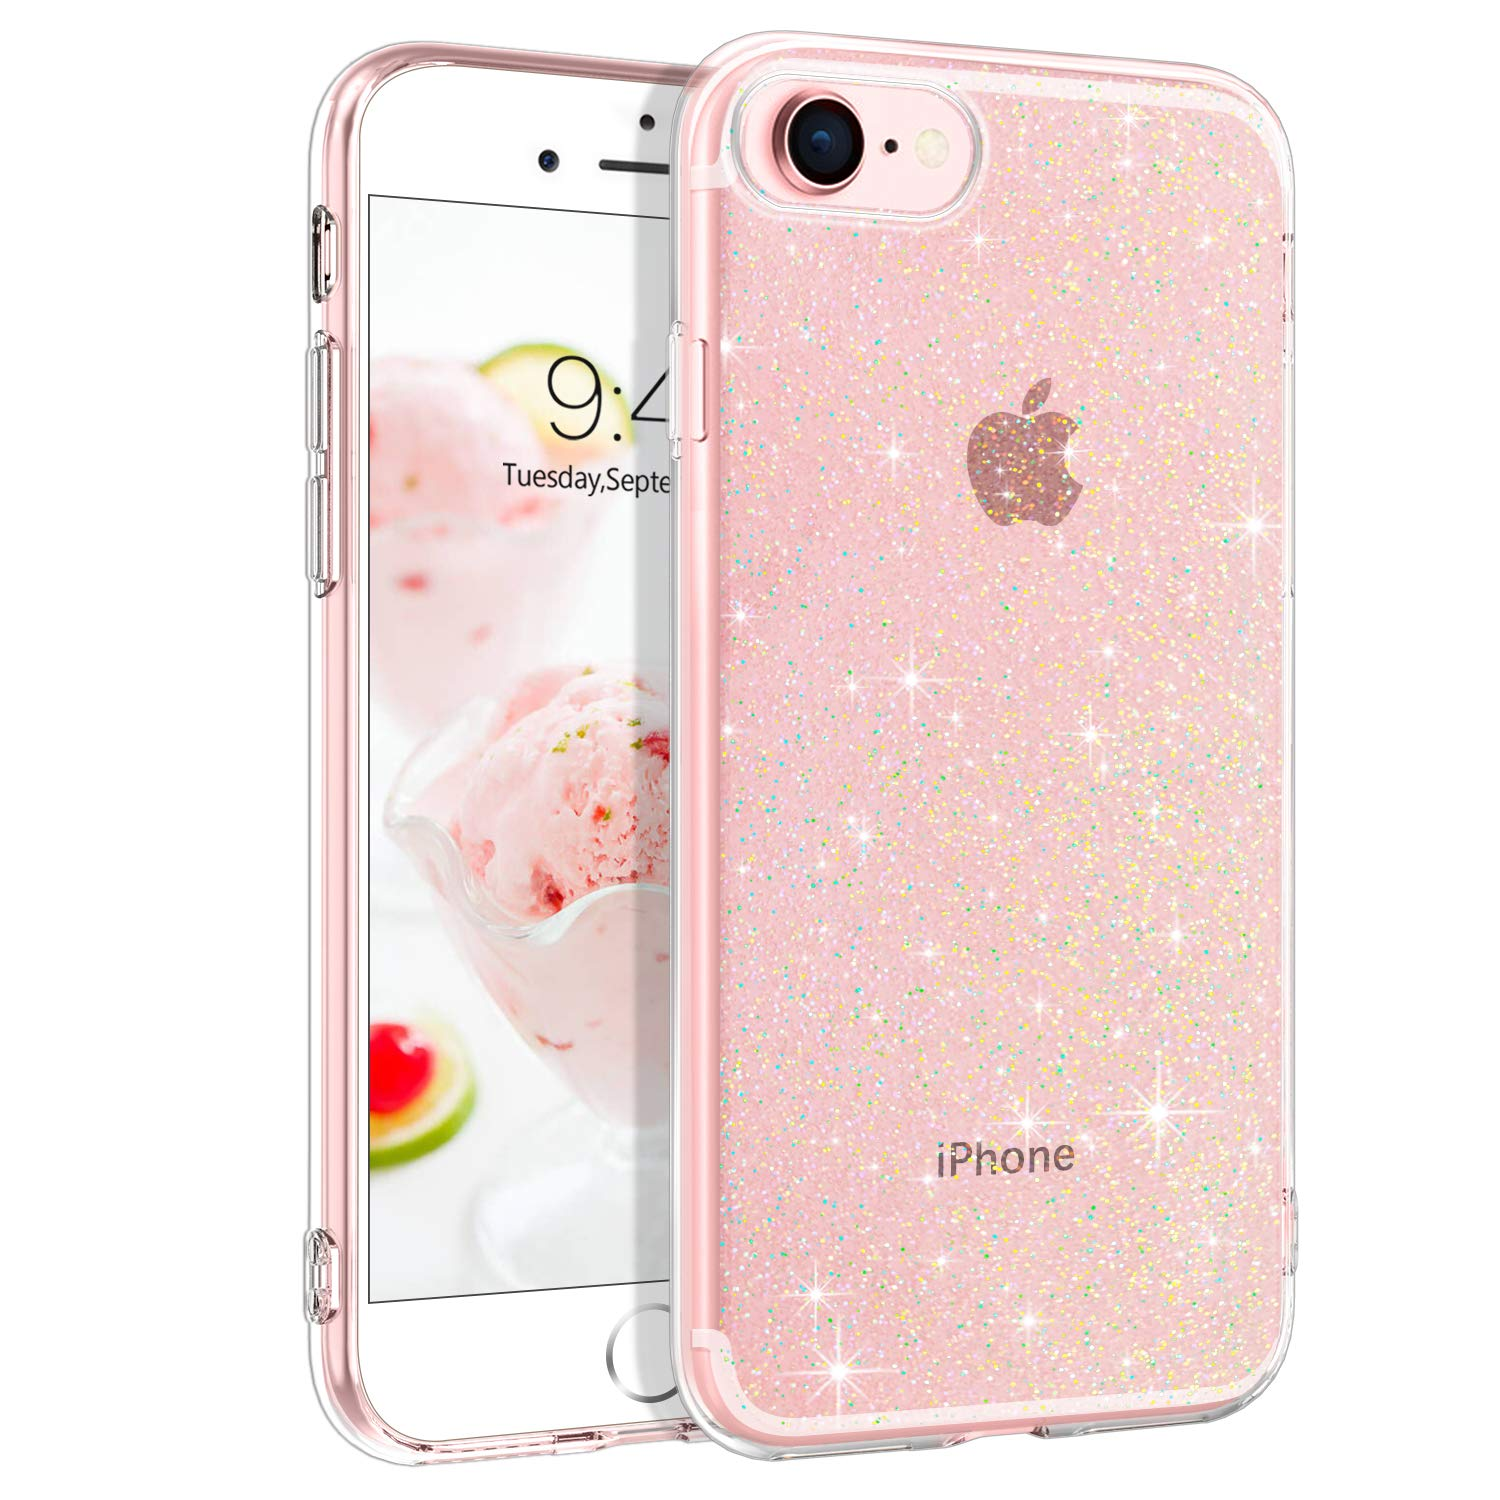 DUEDUE iPhone SE 2020 Case,iPhone 7/8 Case, Ultra Slim Crystal Glitter Soft TPU Shockproof Transparent Cover for New iPhone SE2/8/7, Clear